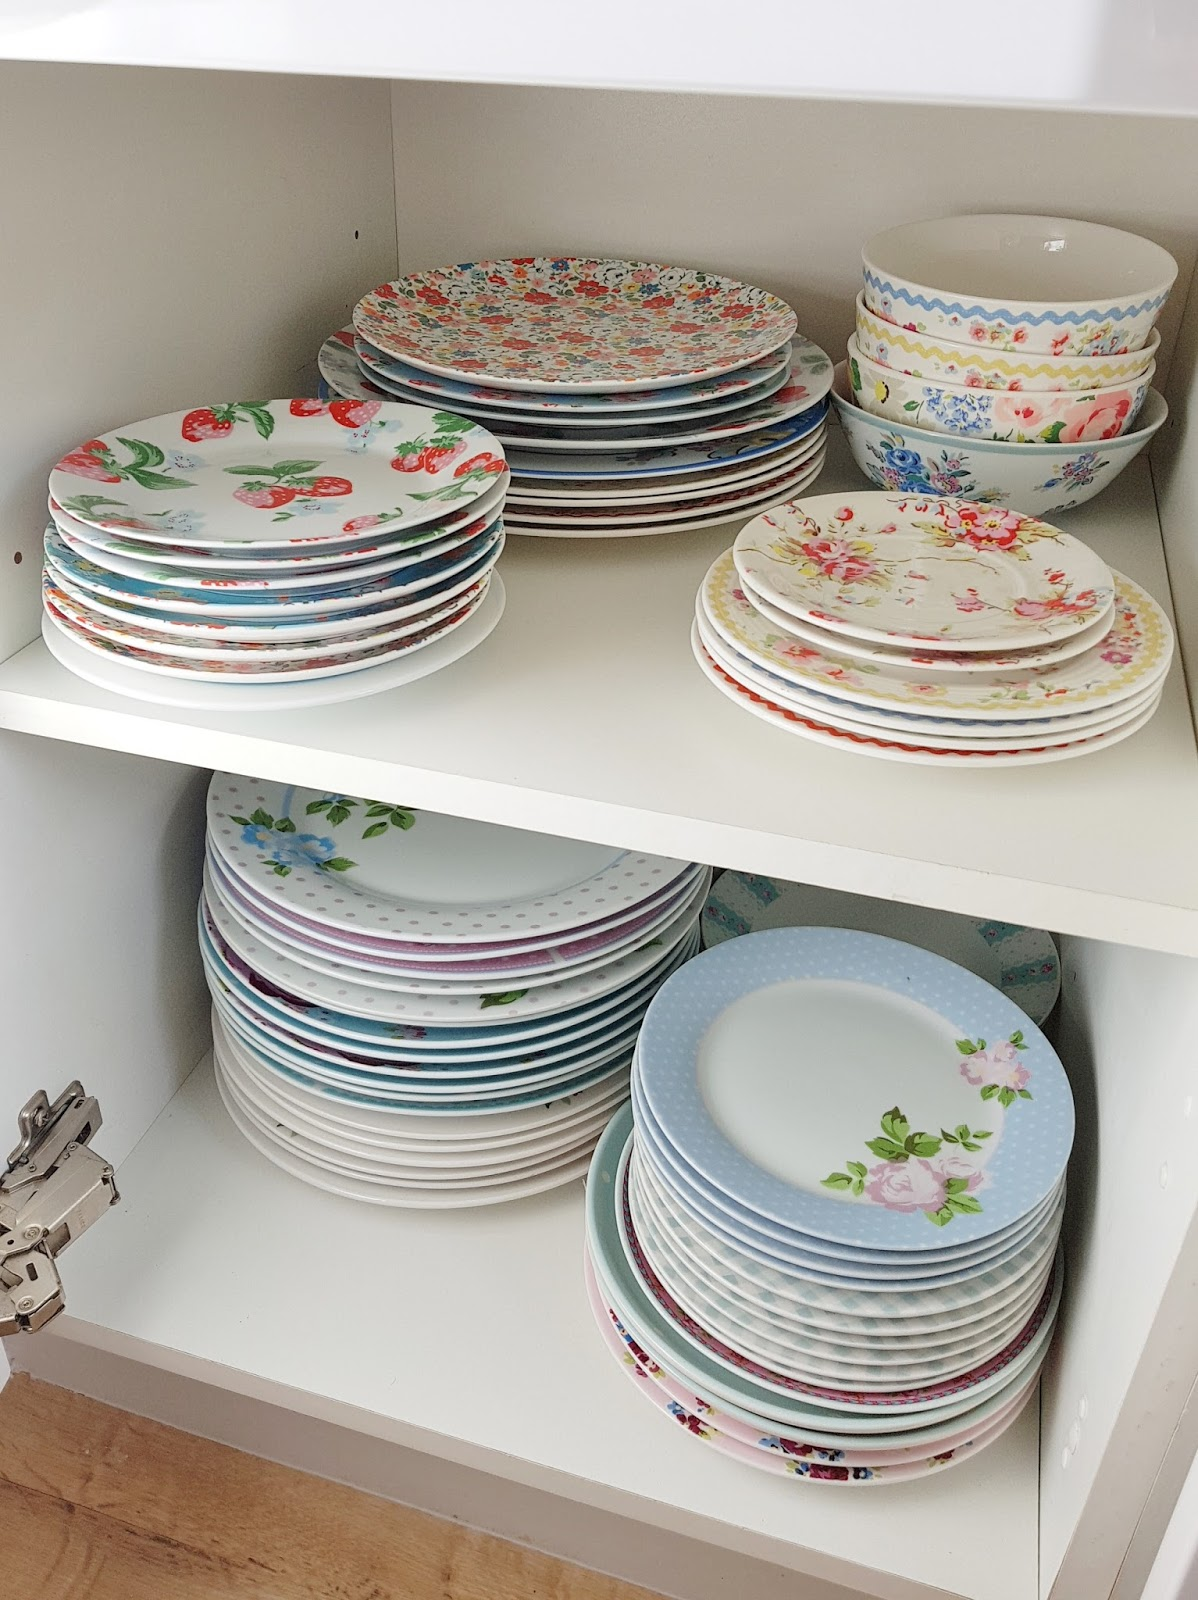 ... I was 18 so thatu0027s almost 10 years of collecting house things and forgetting what I have so ended up buying loads. At least I wonu0027t run out of plates! & My First Home: The Kitchen | Victoriau0027s Vintage | Travel Home Food ...